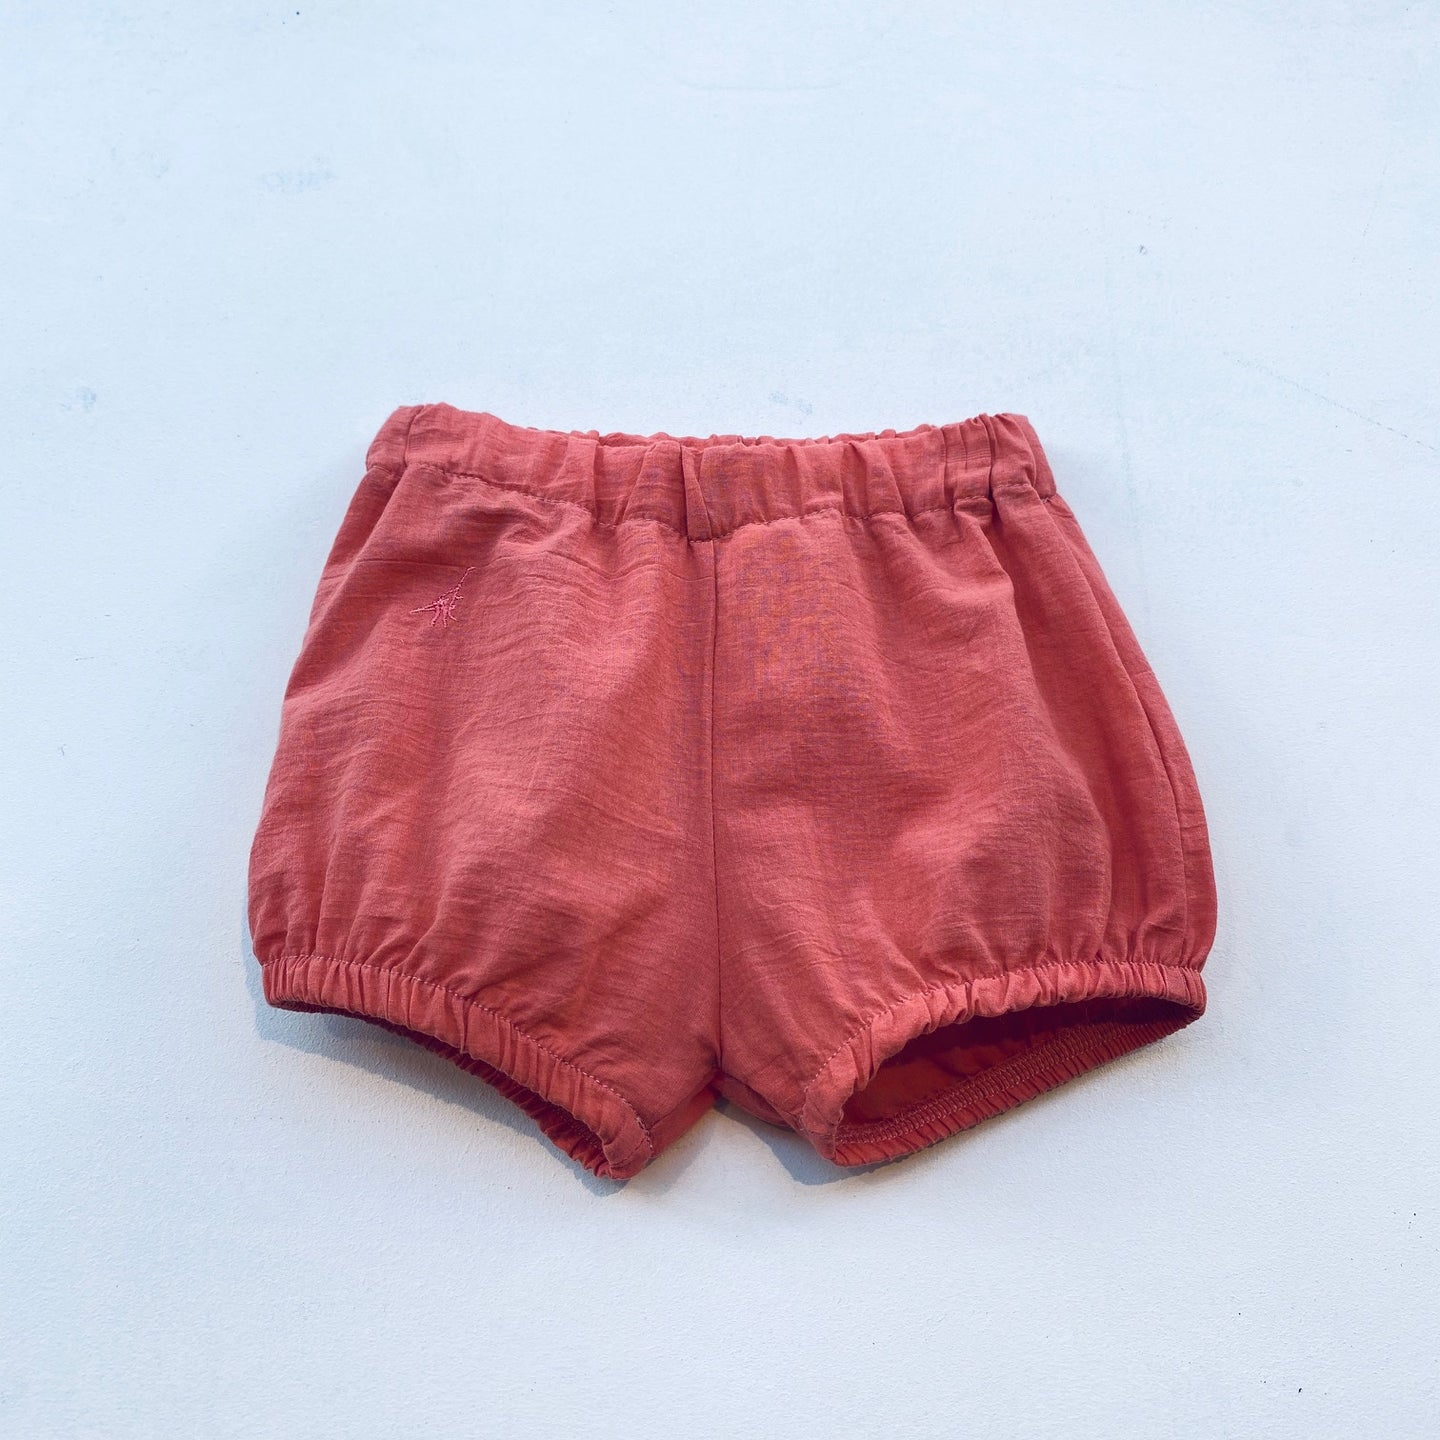 BLOOMER SHORTS WOVEN ORGANIC COTTON -CORAL-